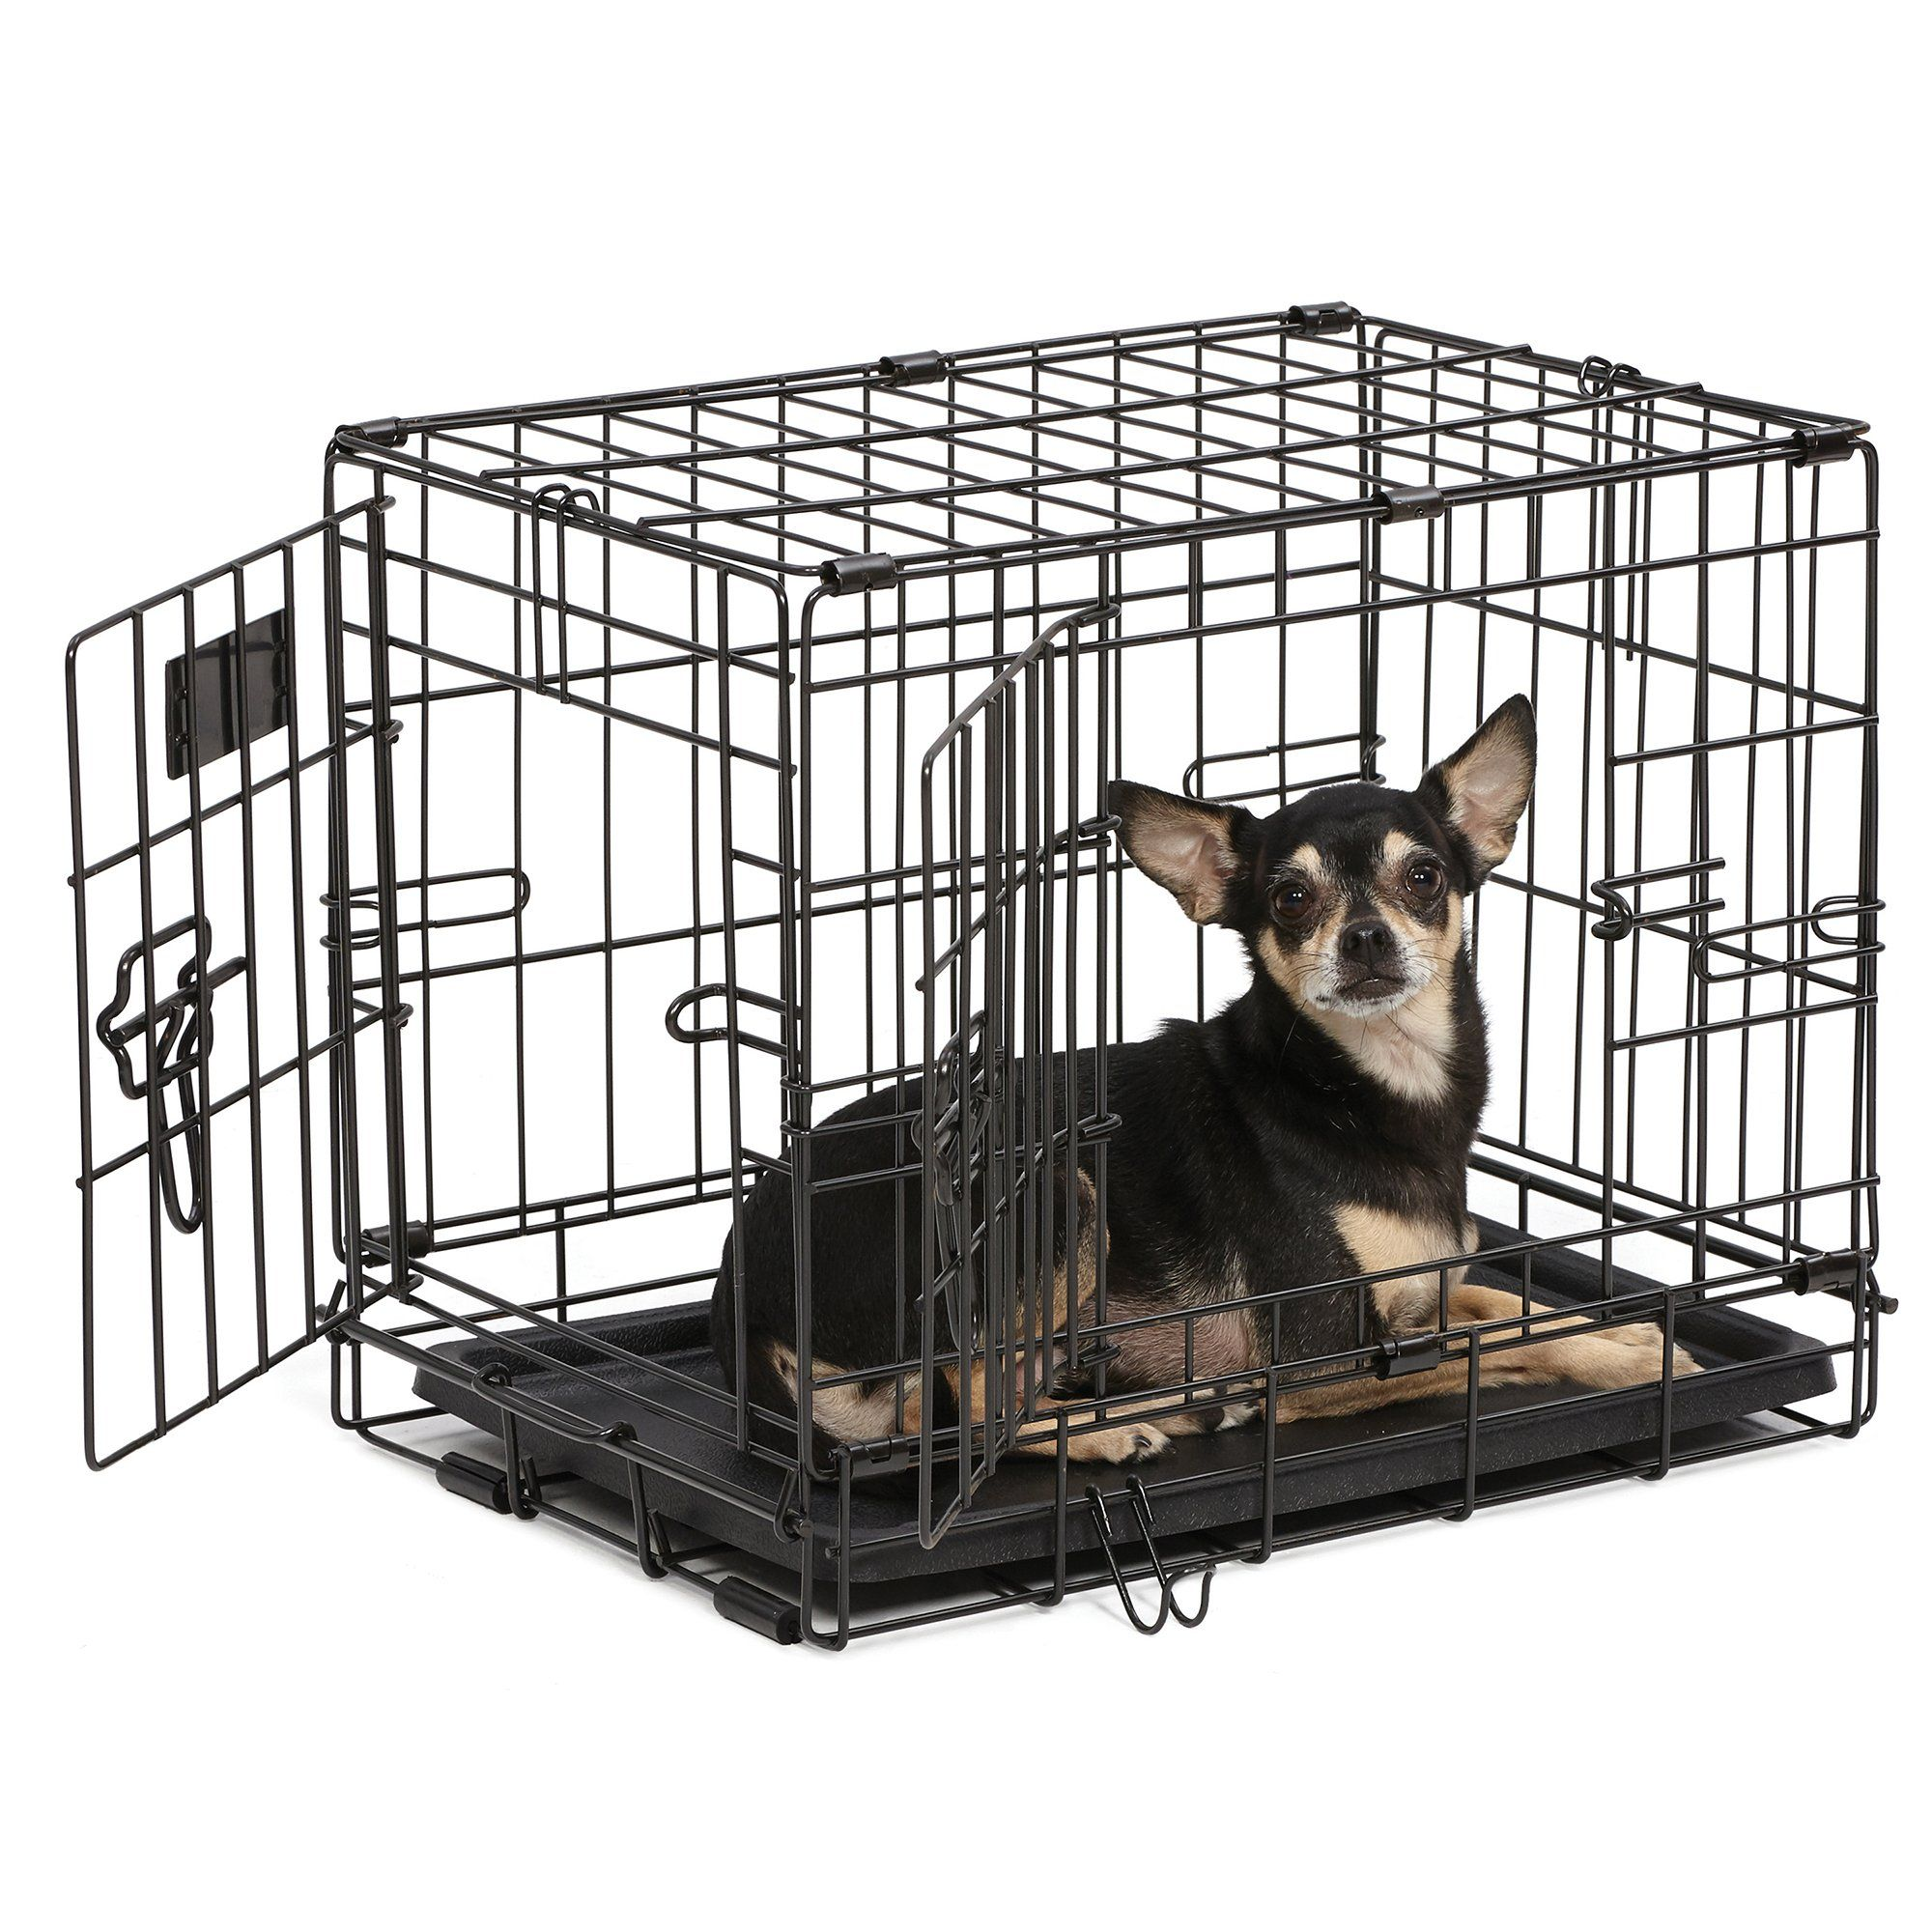 Midwest Icrate Double Door Folding Dog Crate 42 L X 28 W X 30